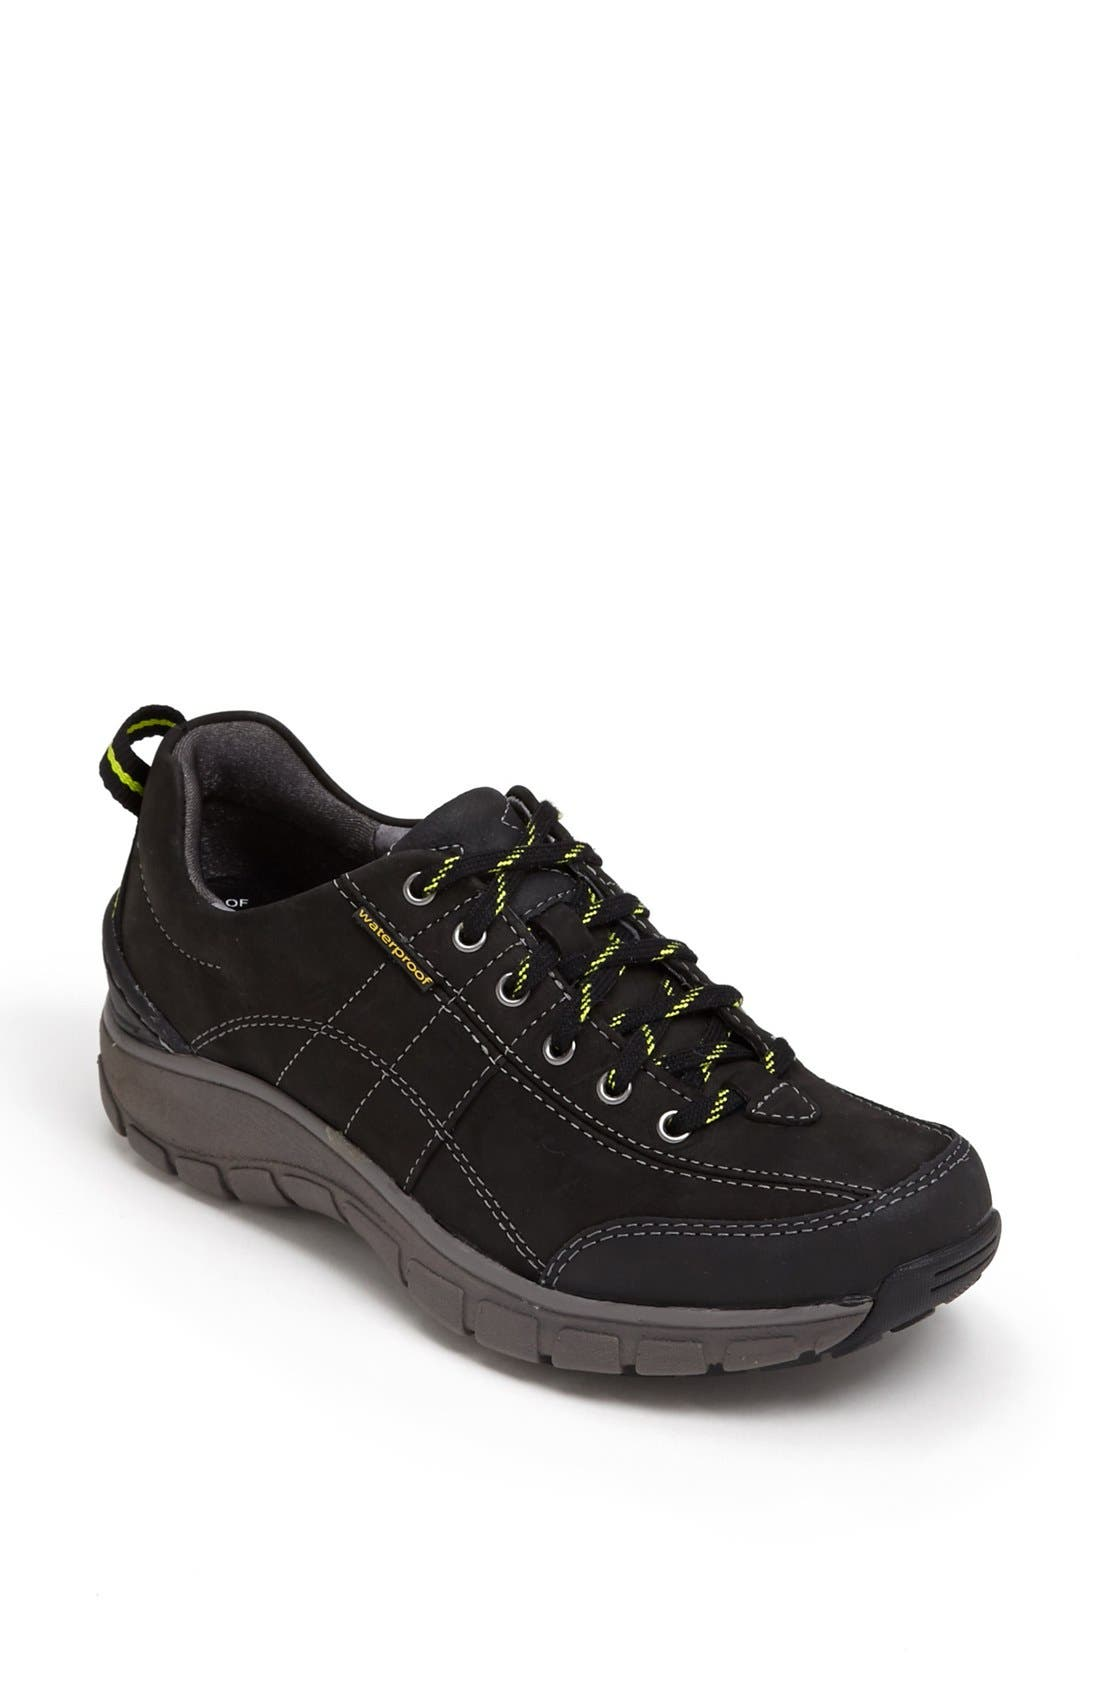 CLARKS® 'Wave Trek' Waterproof Sneaker